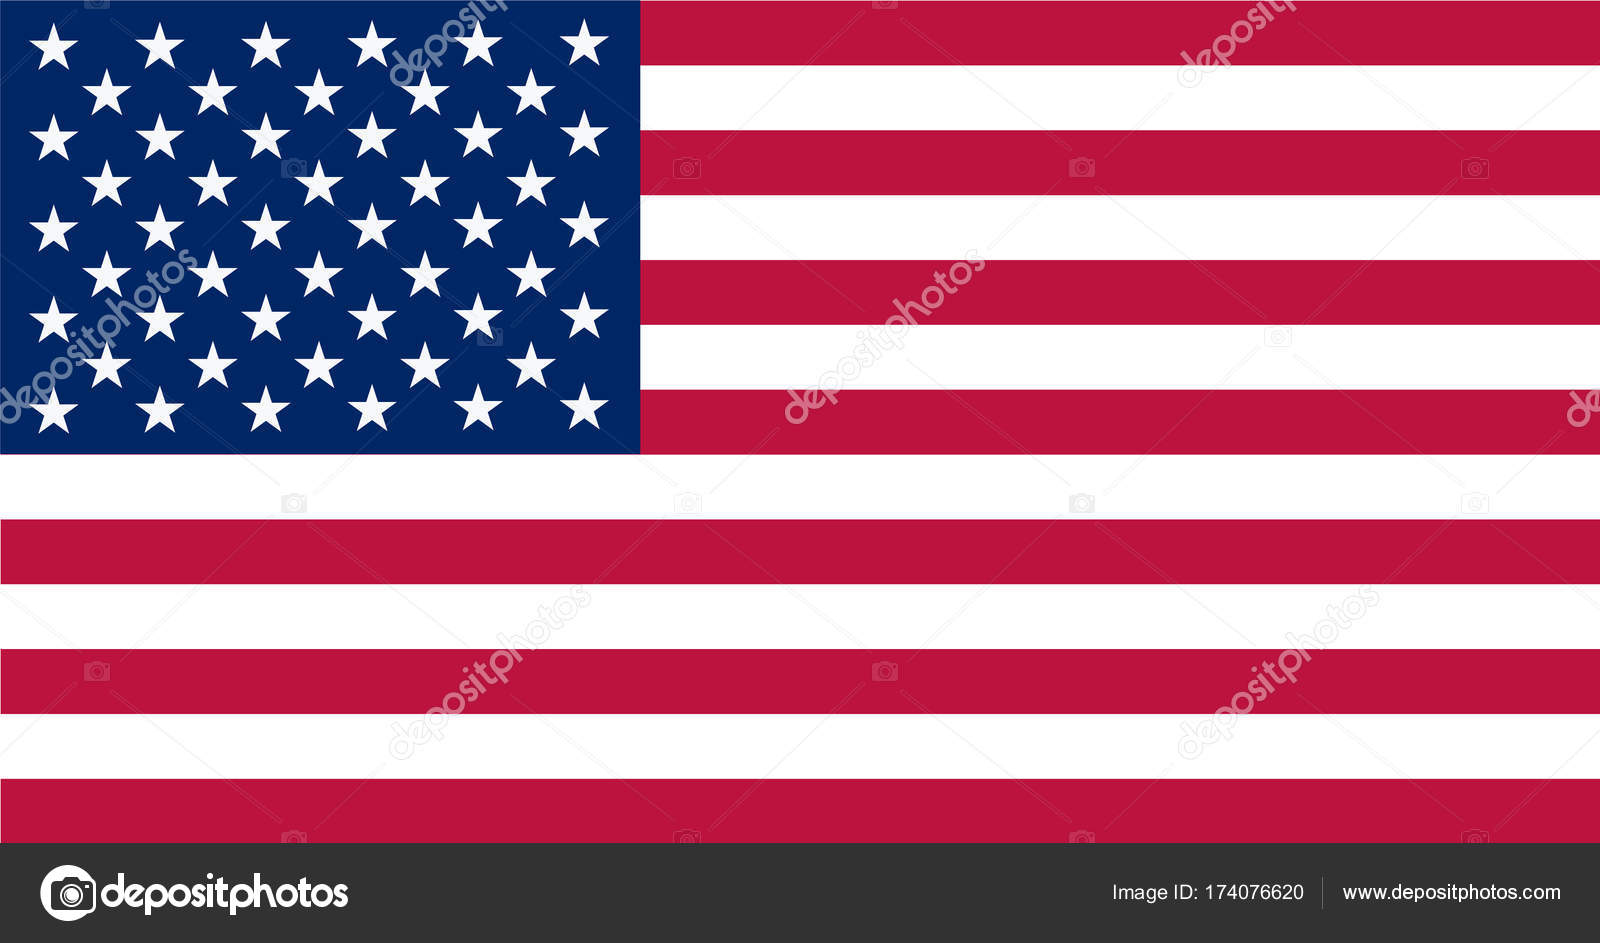 American Flag Vector image of American Flag American Flag - America Flag Background